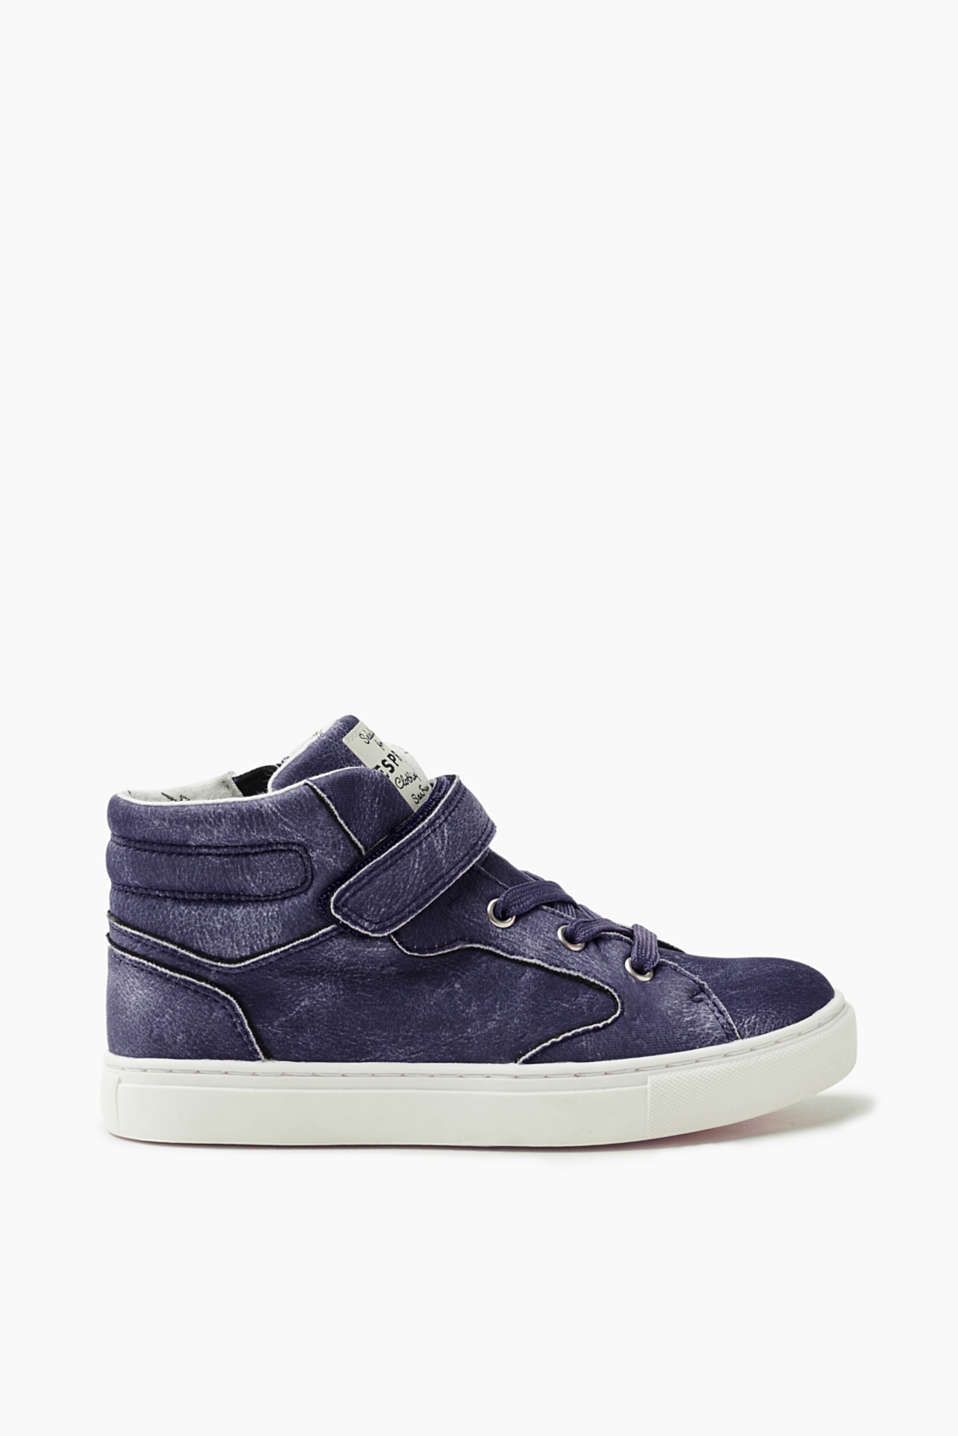 Esprit - High Top-Sneaker im Vintage-Look